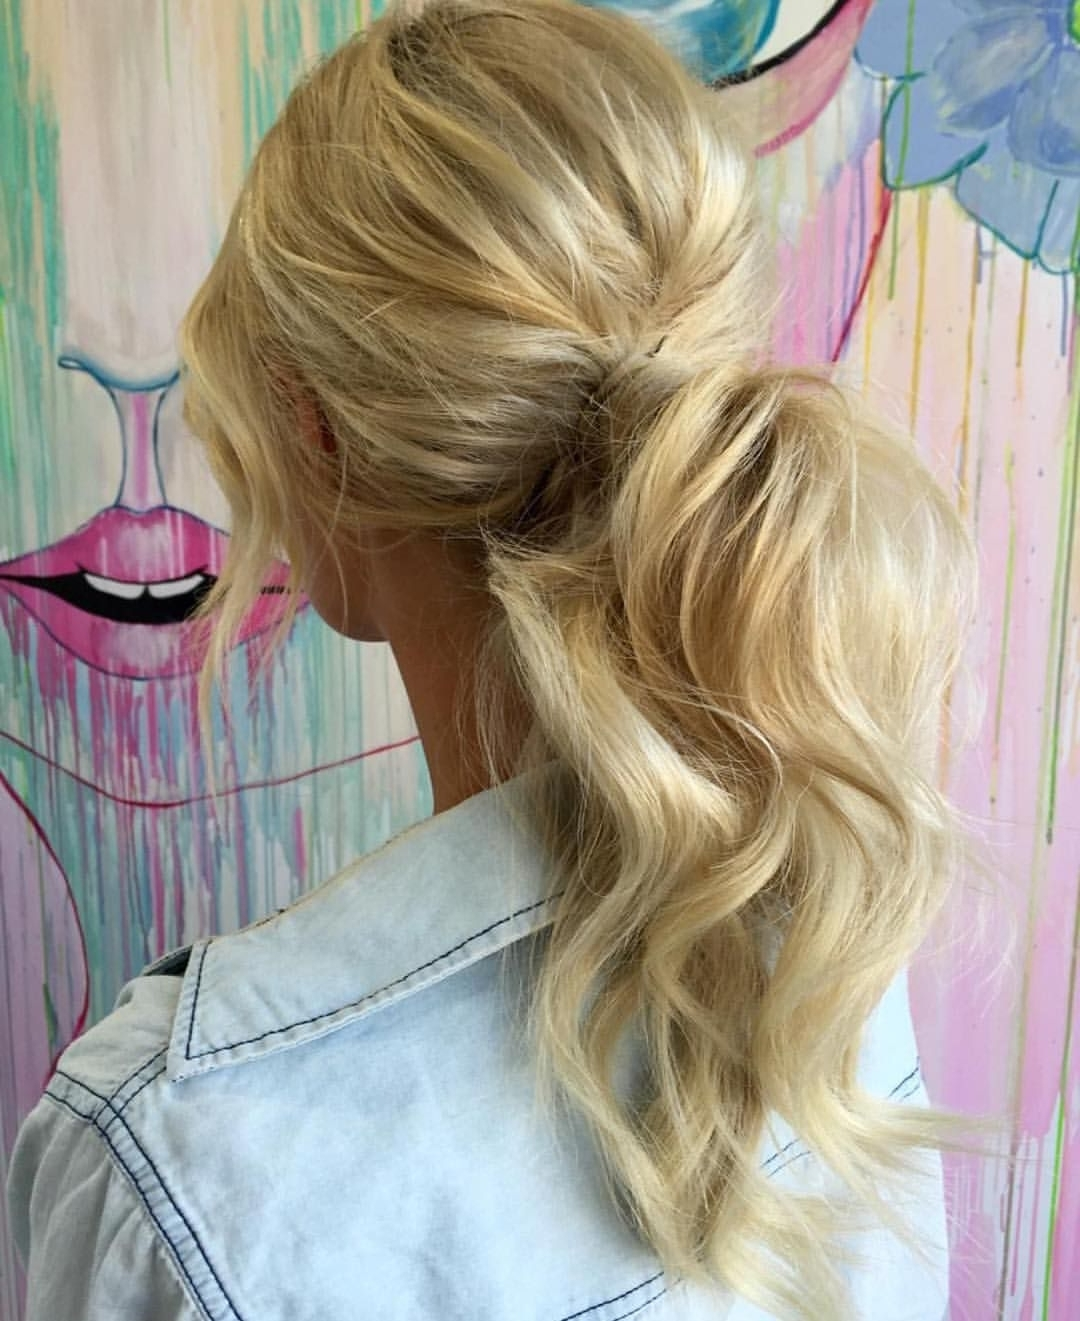 Ponytail, Goal And Pertaining To Well Liked Lively And Lovely Low Ponytail Hairstyles (View 15 of 20)